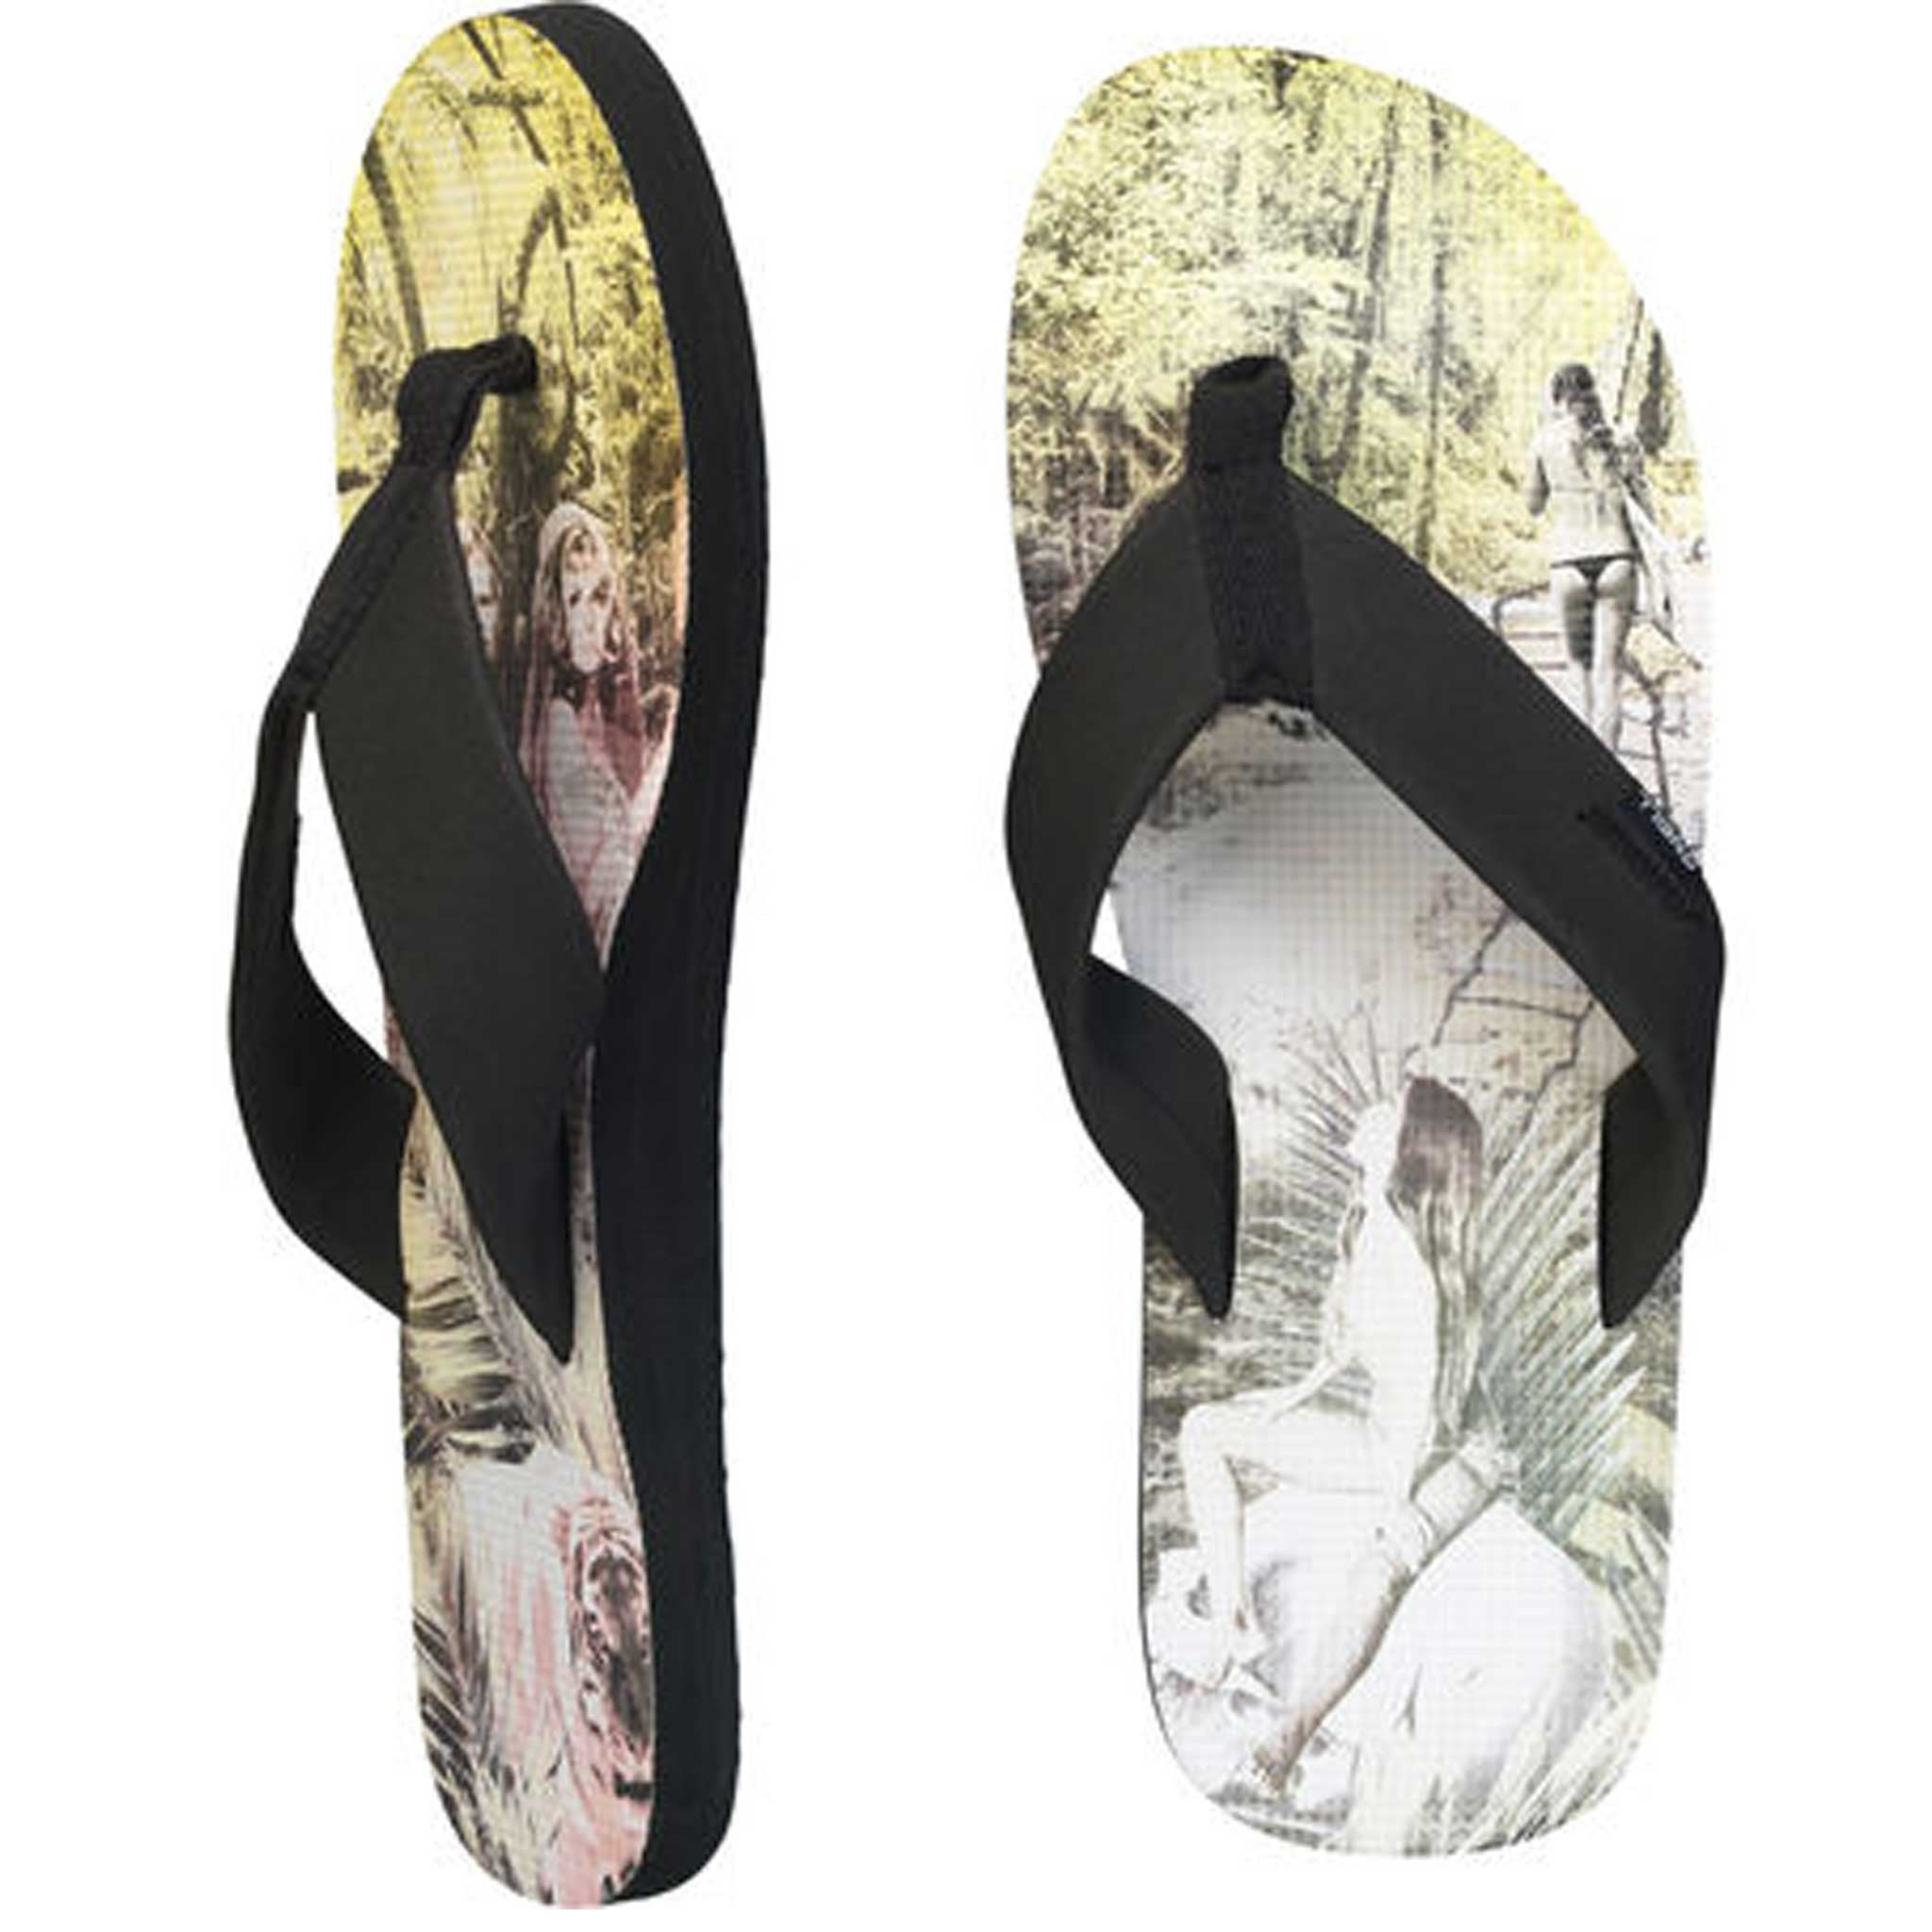 Profile Pattern Byron Beige slippers - Stoked Boardshop